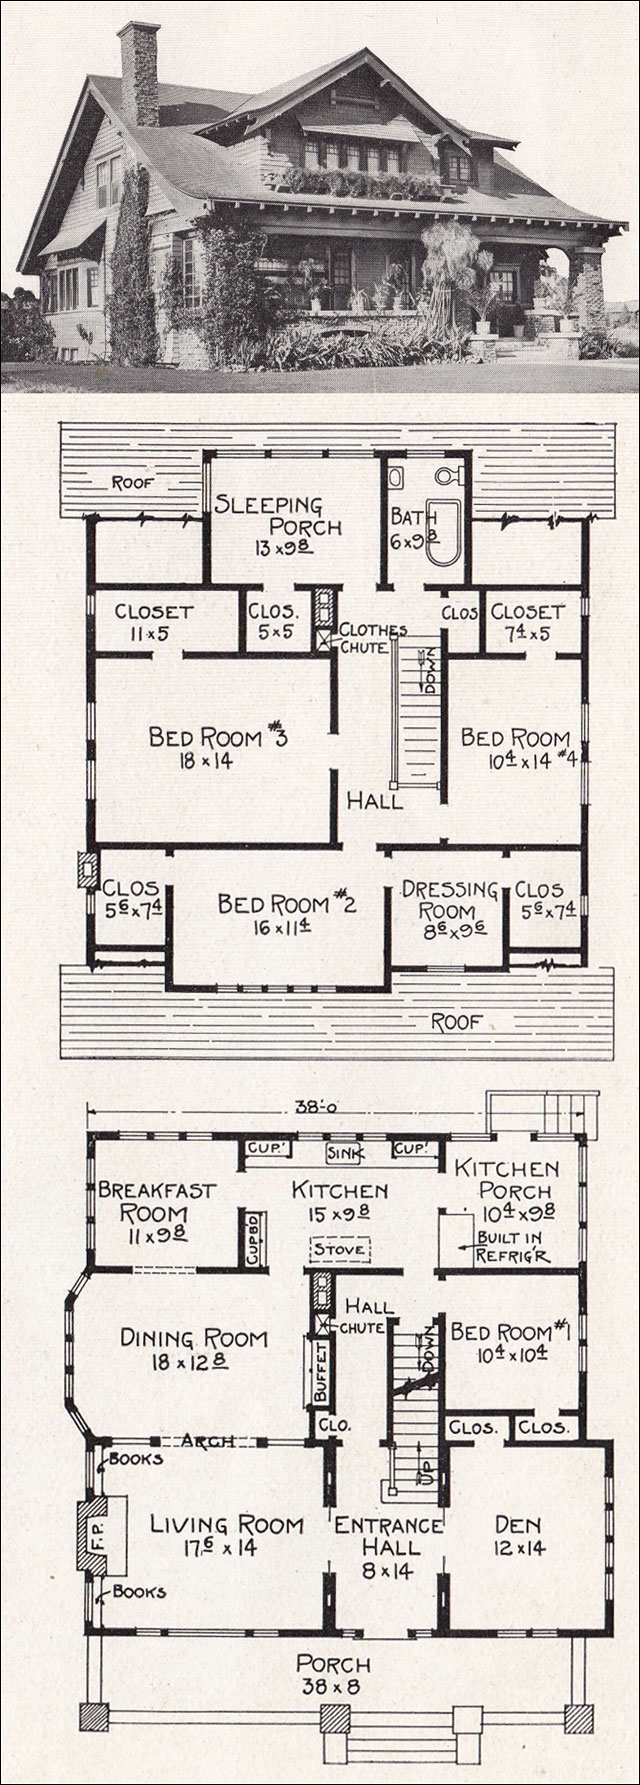 Modular home bungalow modular home floor plans for Vintage bungalow house plans